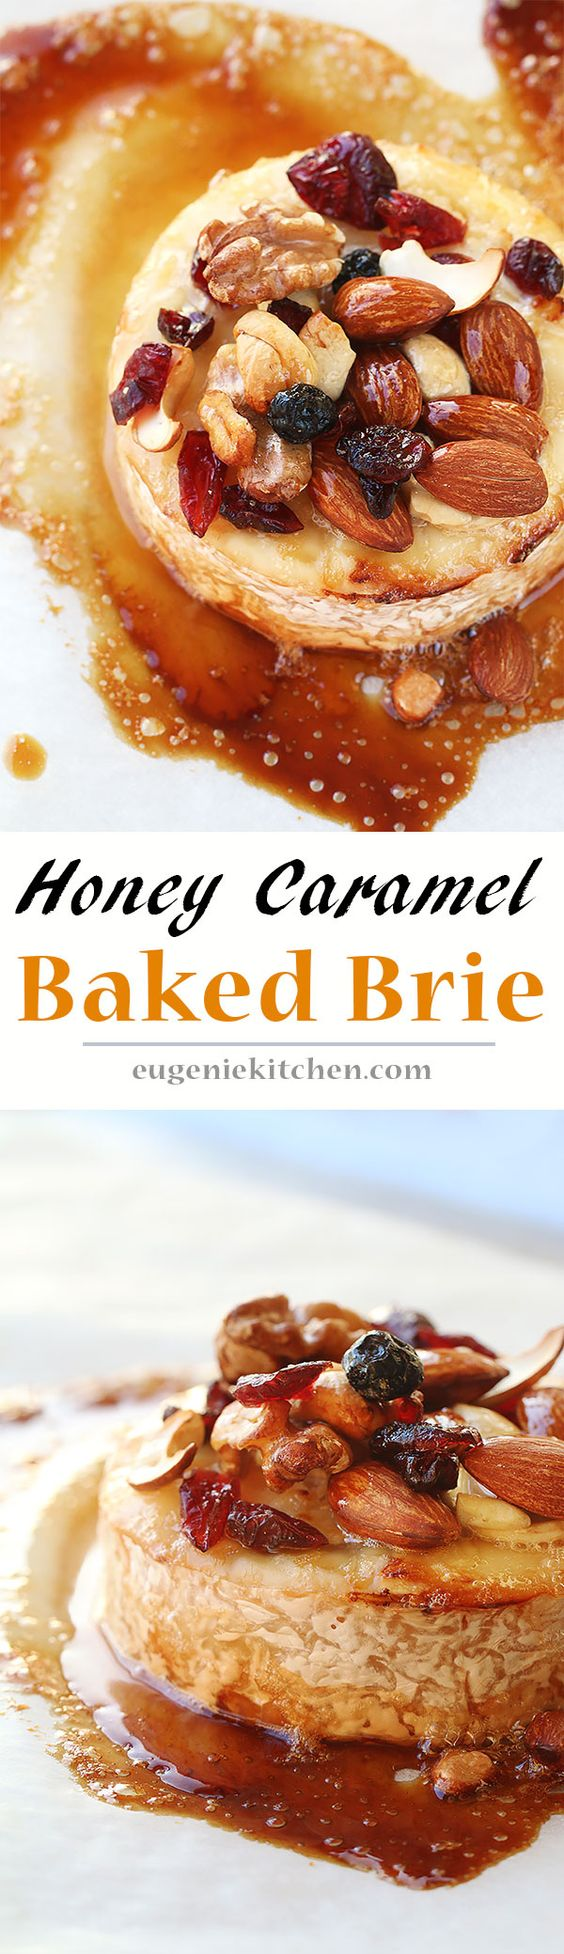 Easy, yet fancy. Ready in 20 minutes. This delicious baked Brie caramelized with honey recipe is a perfect cheese appetizer for any occasion!